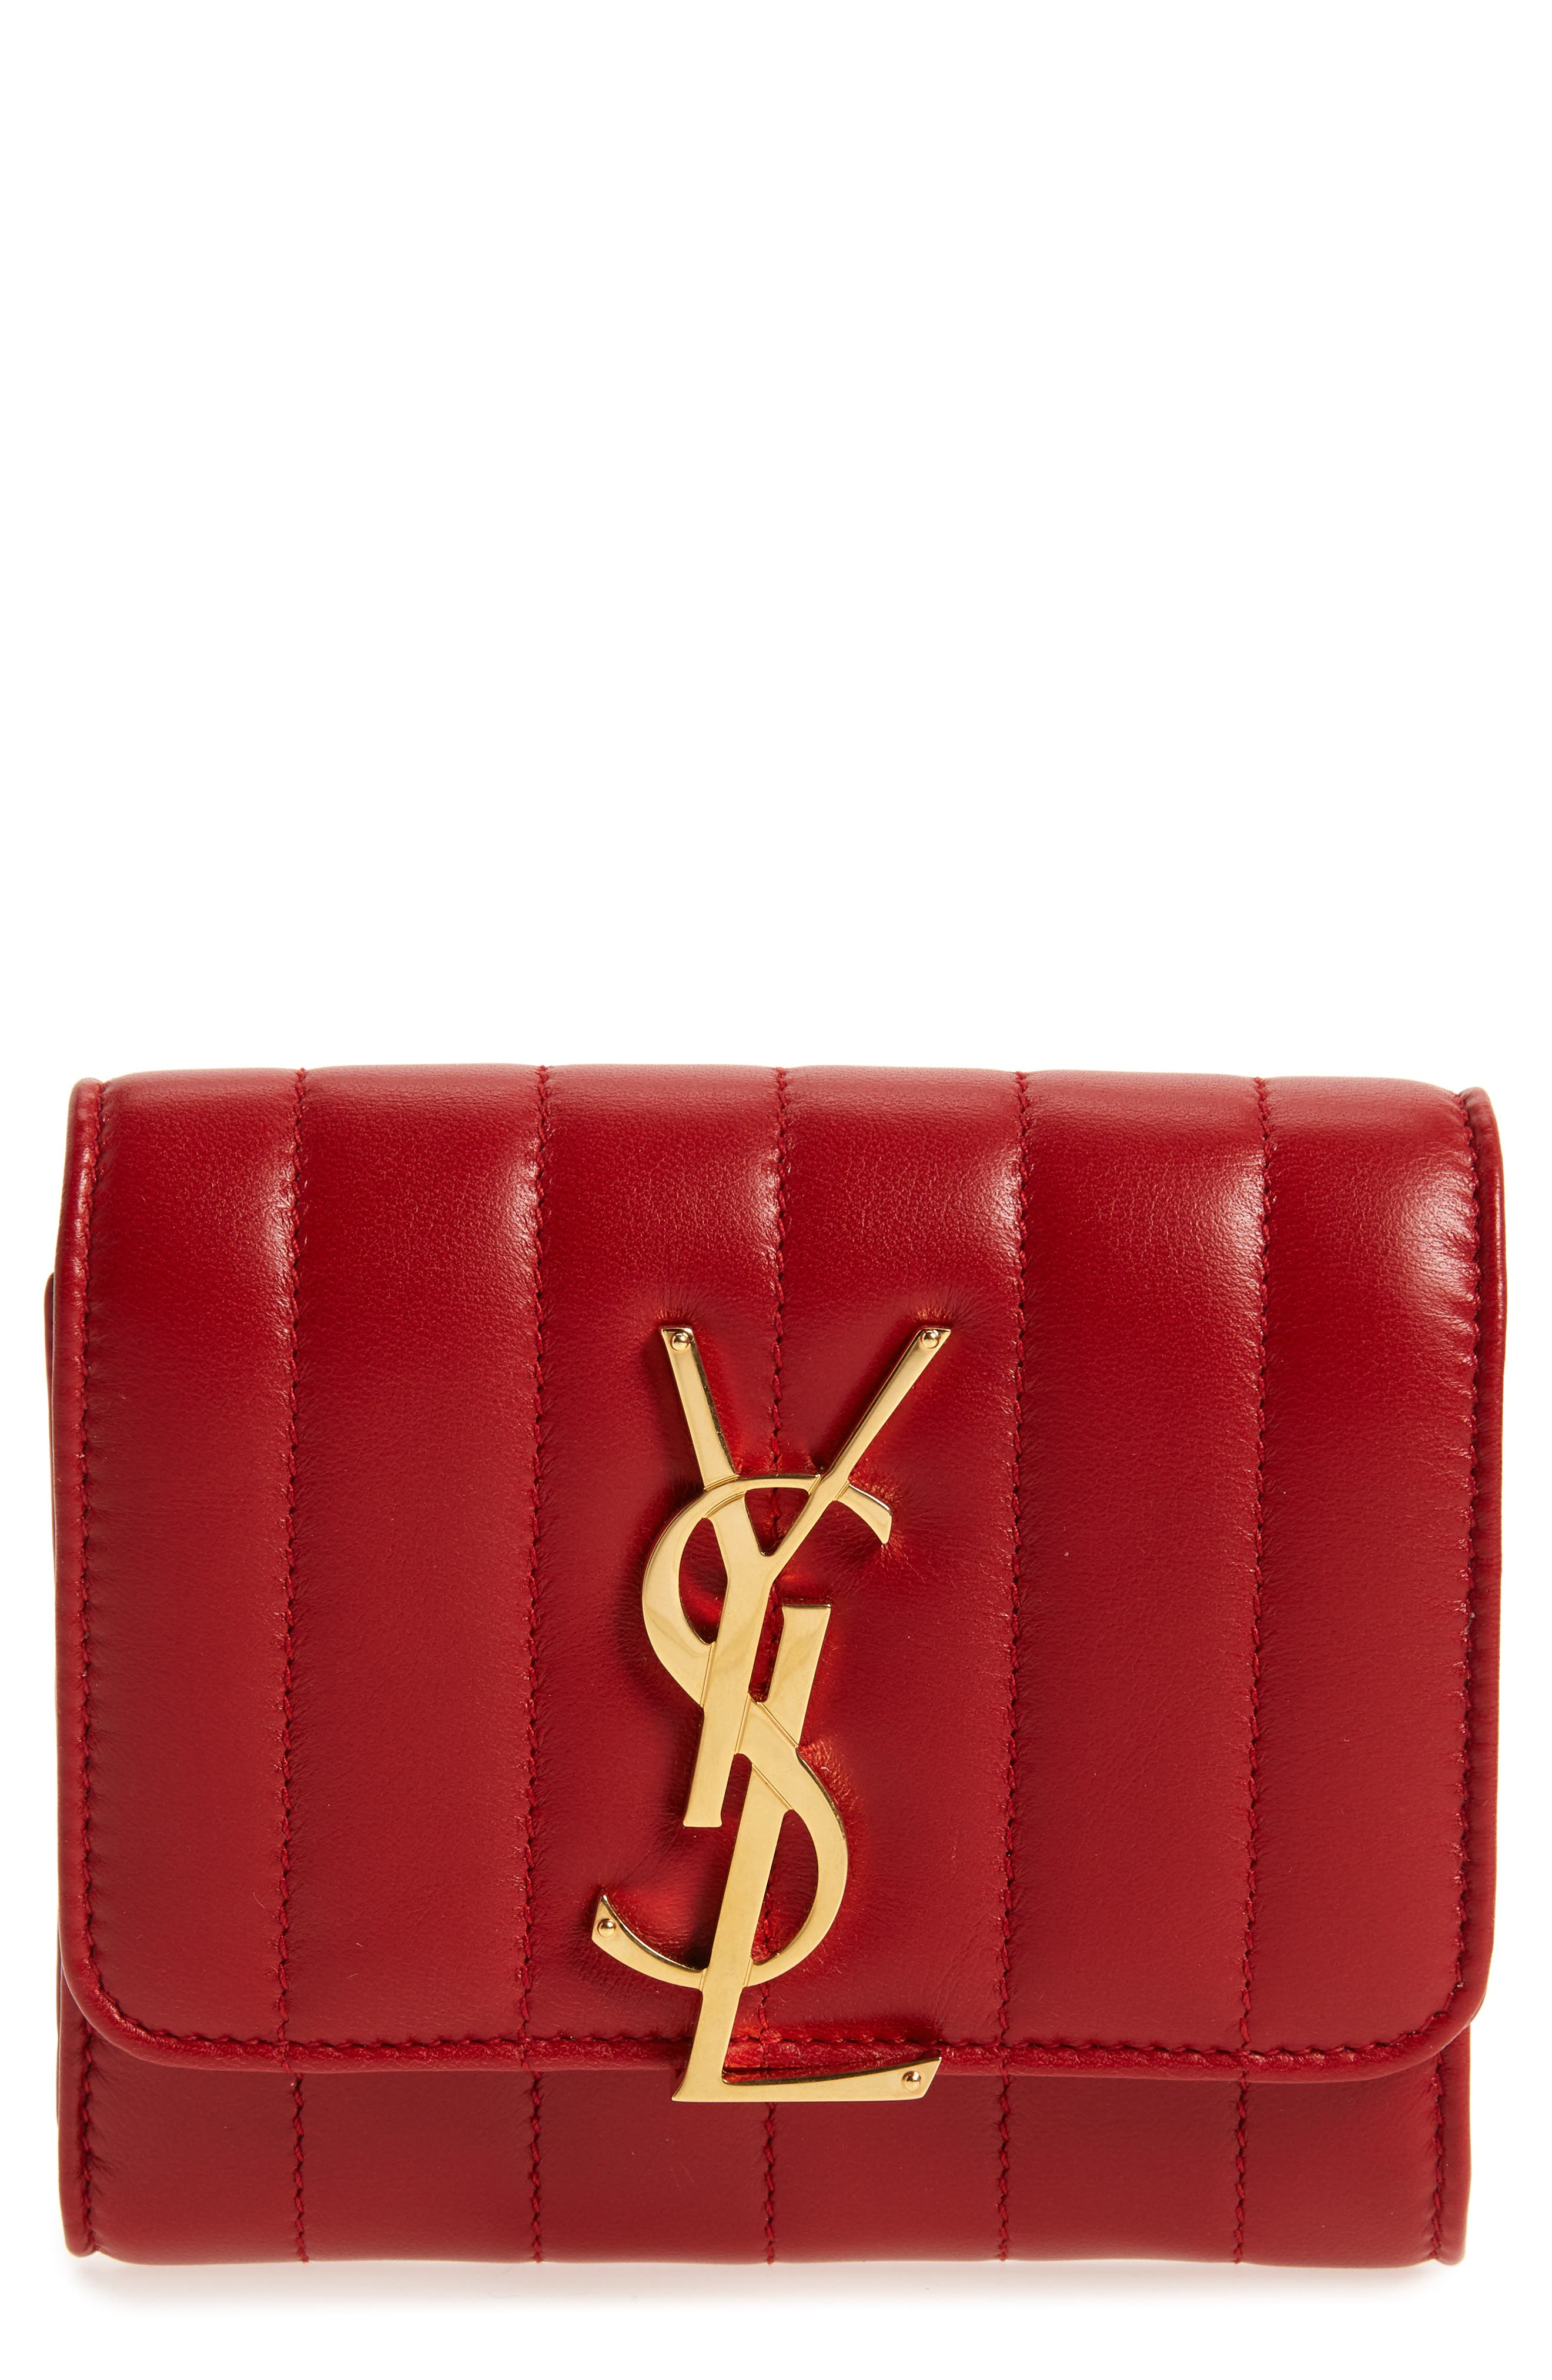 Vicky Lambskin Leather Trifold Wallet,                         Main,                         color, ROUGE EROS